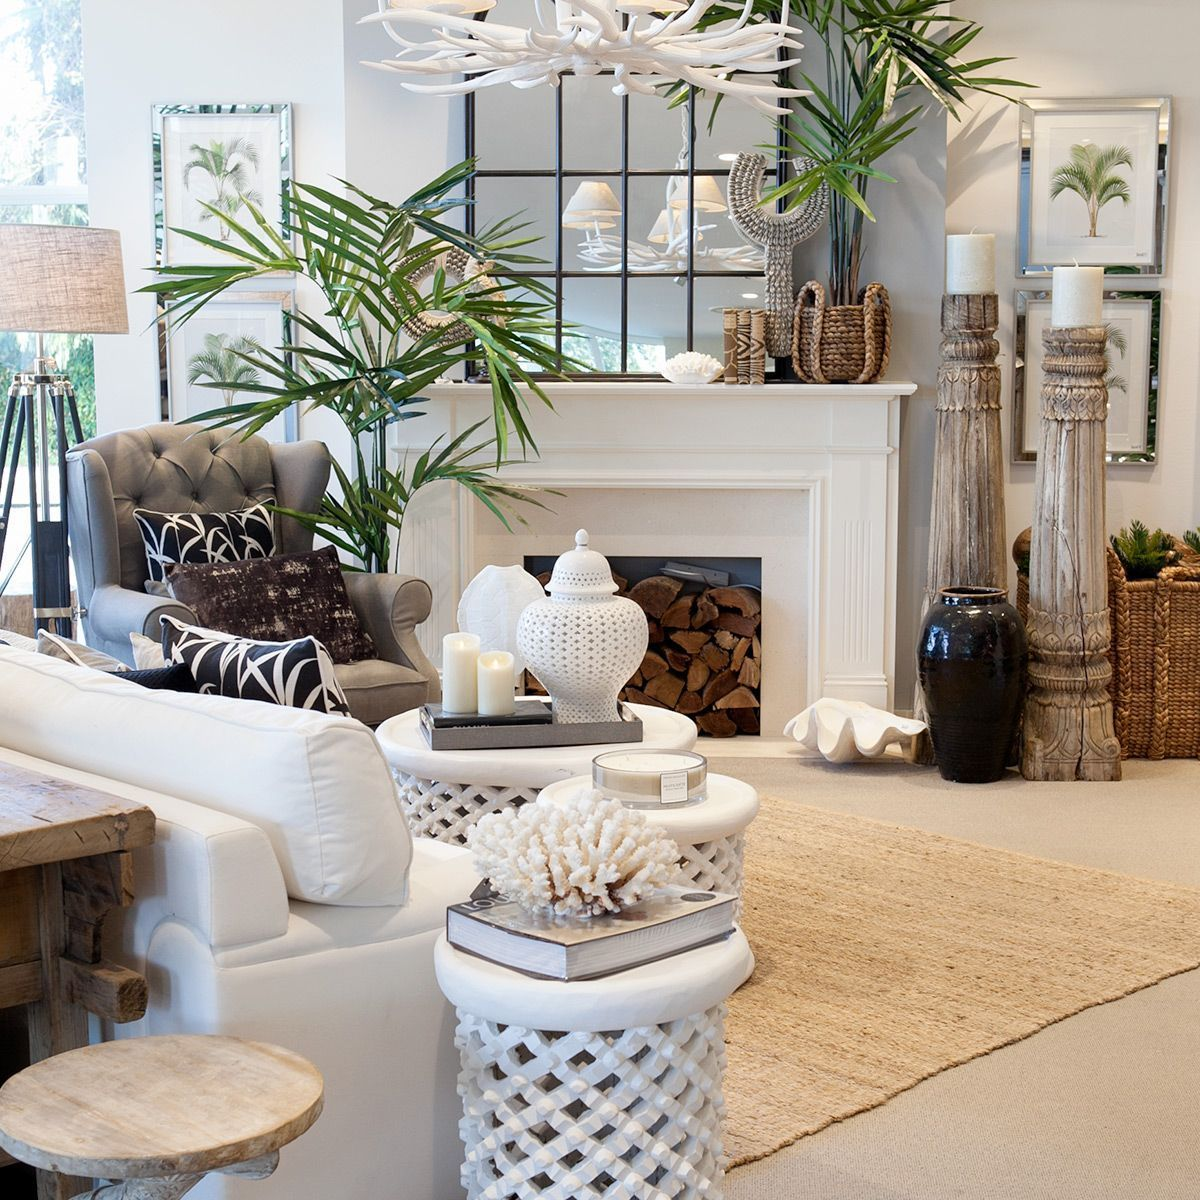 A Beautiful Tropical Interior Vintageinspiredhomed